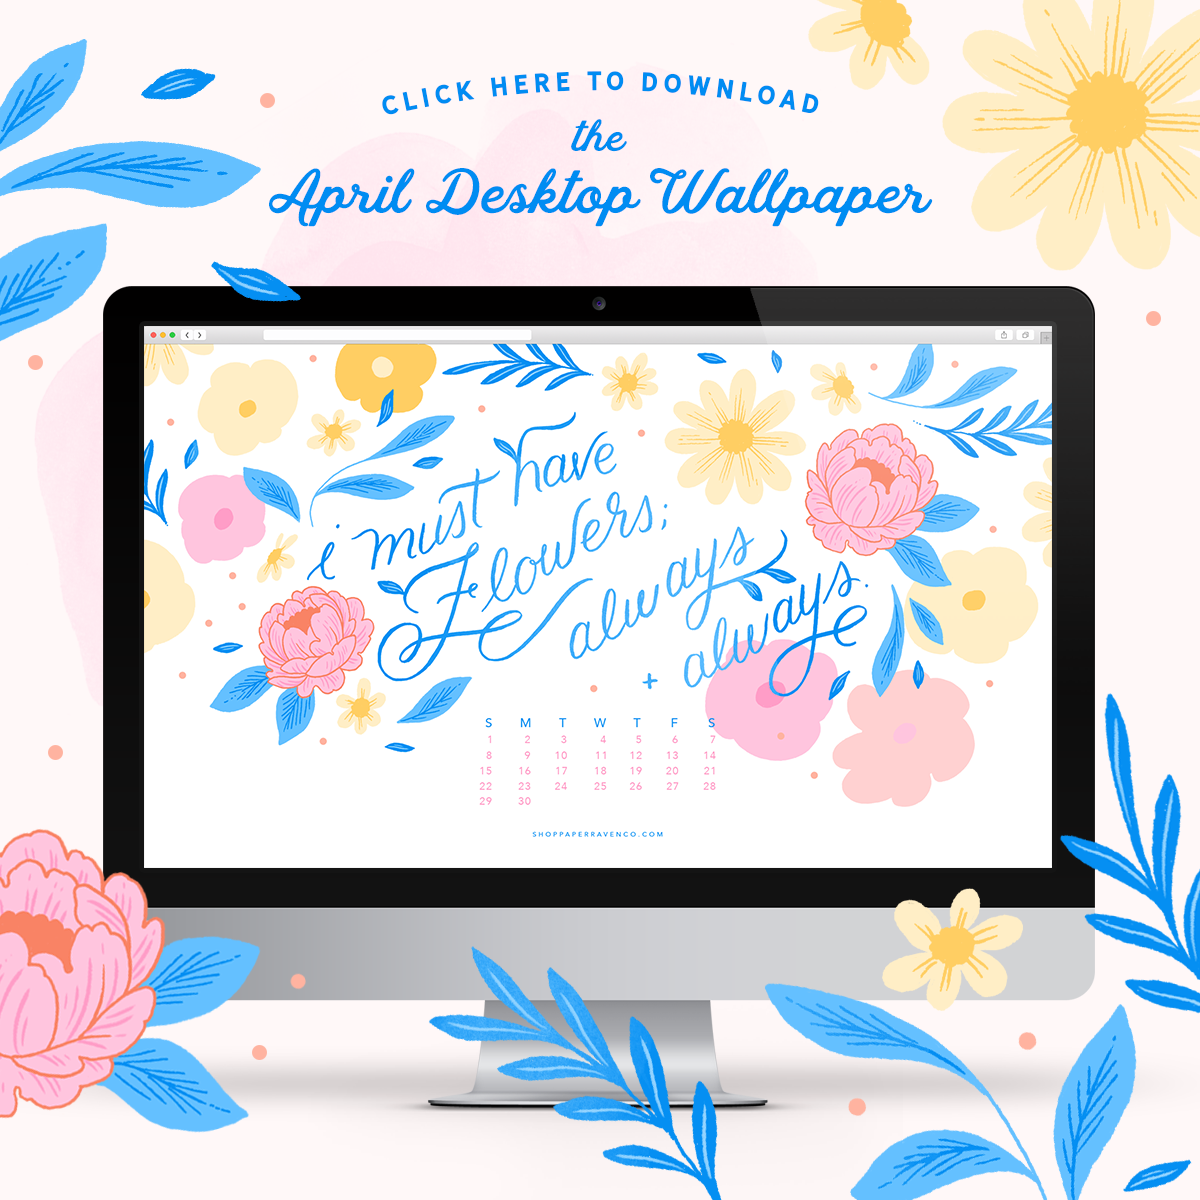 April 2018 Illustrated Desktop Wallpaper by Paper Raven Co.